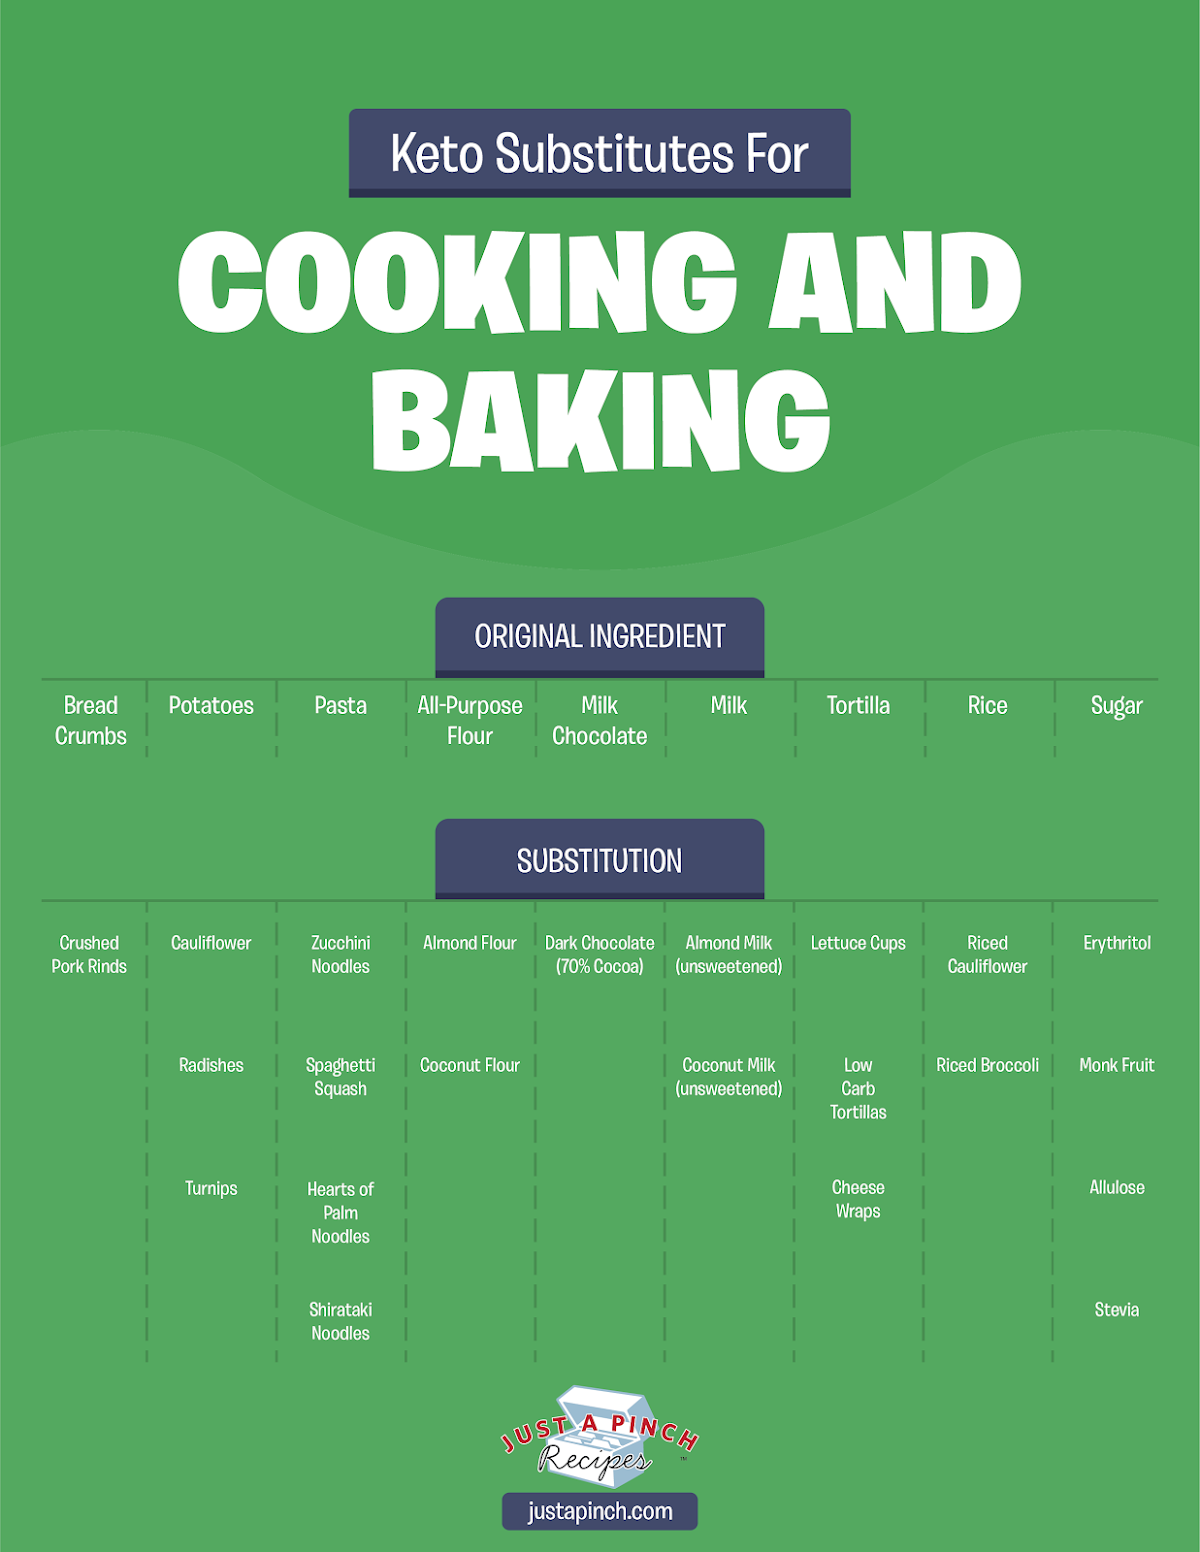 Keto Substitutions for Cooking and Baking